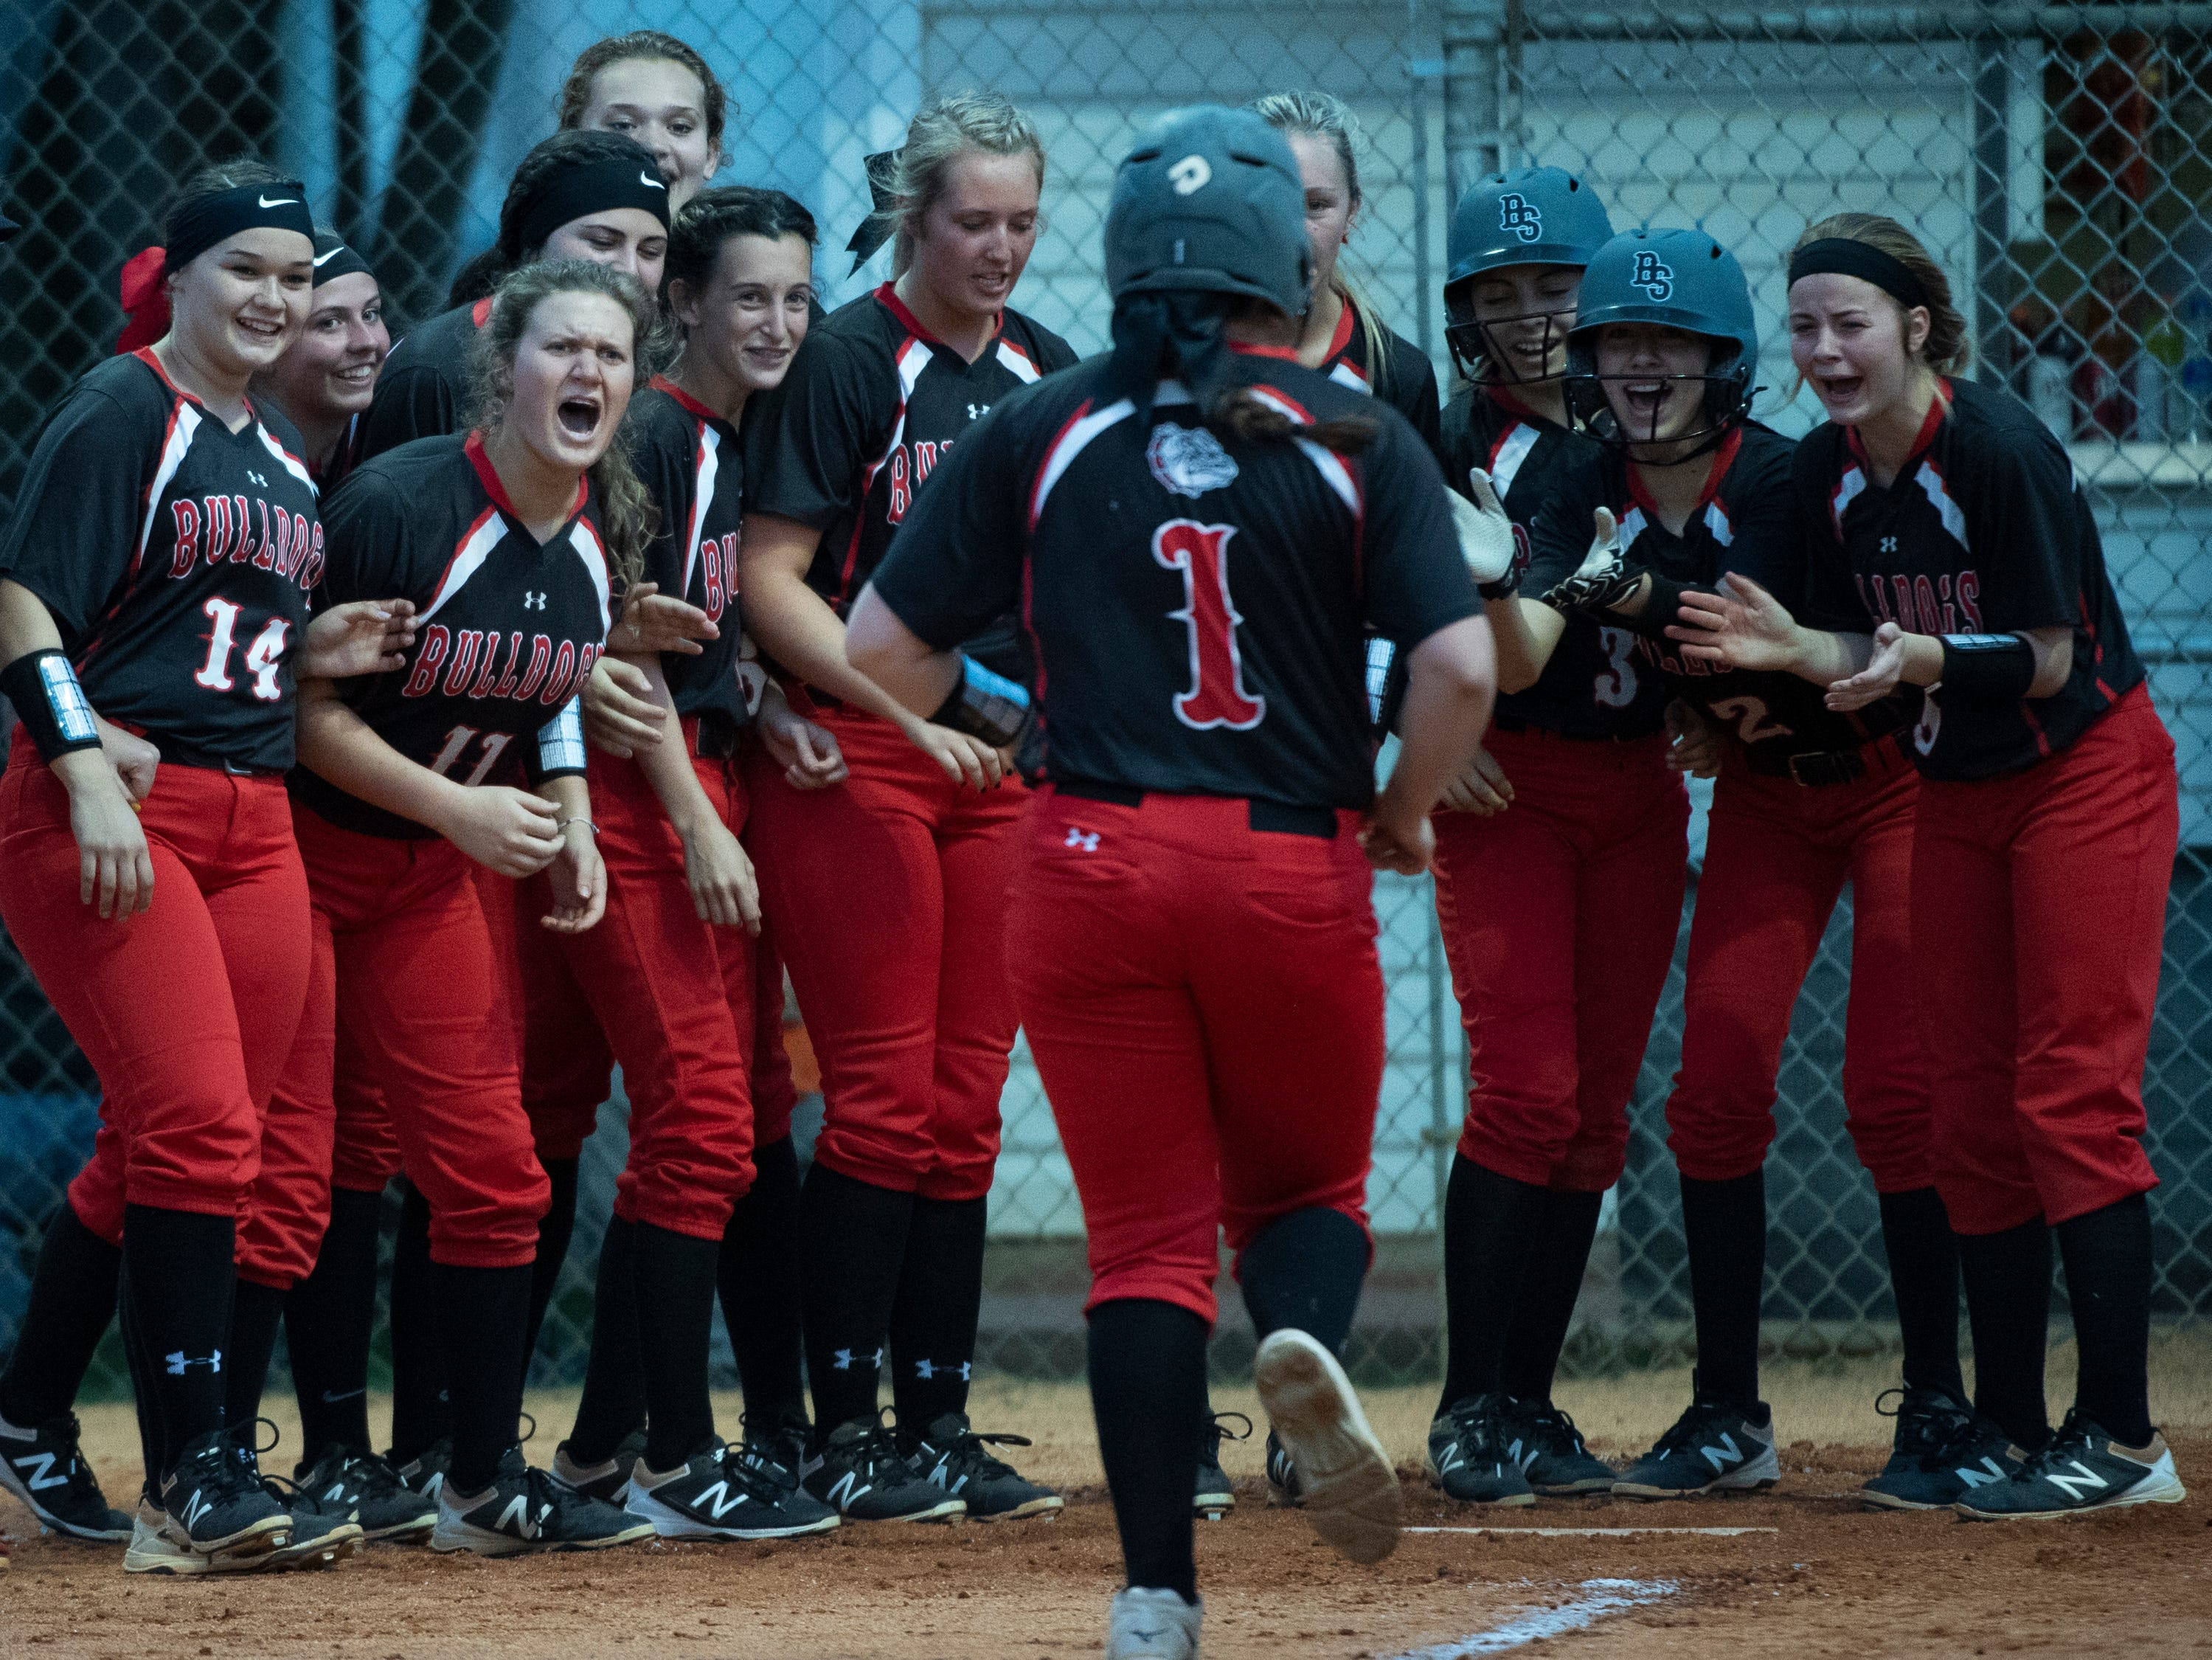 The Boiling Springs High School dugout celebrates Boiling Springs' Olivia Hall's (1) home run during the game at Hillcrest Friday, April 12, 2019.